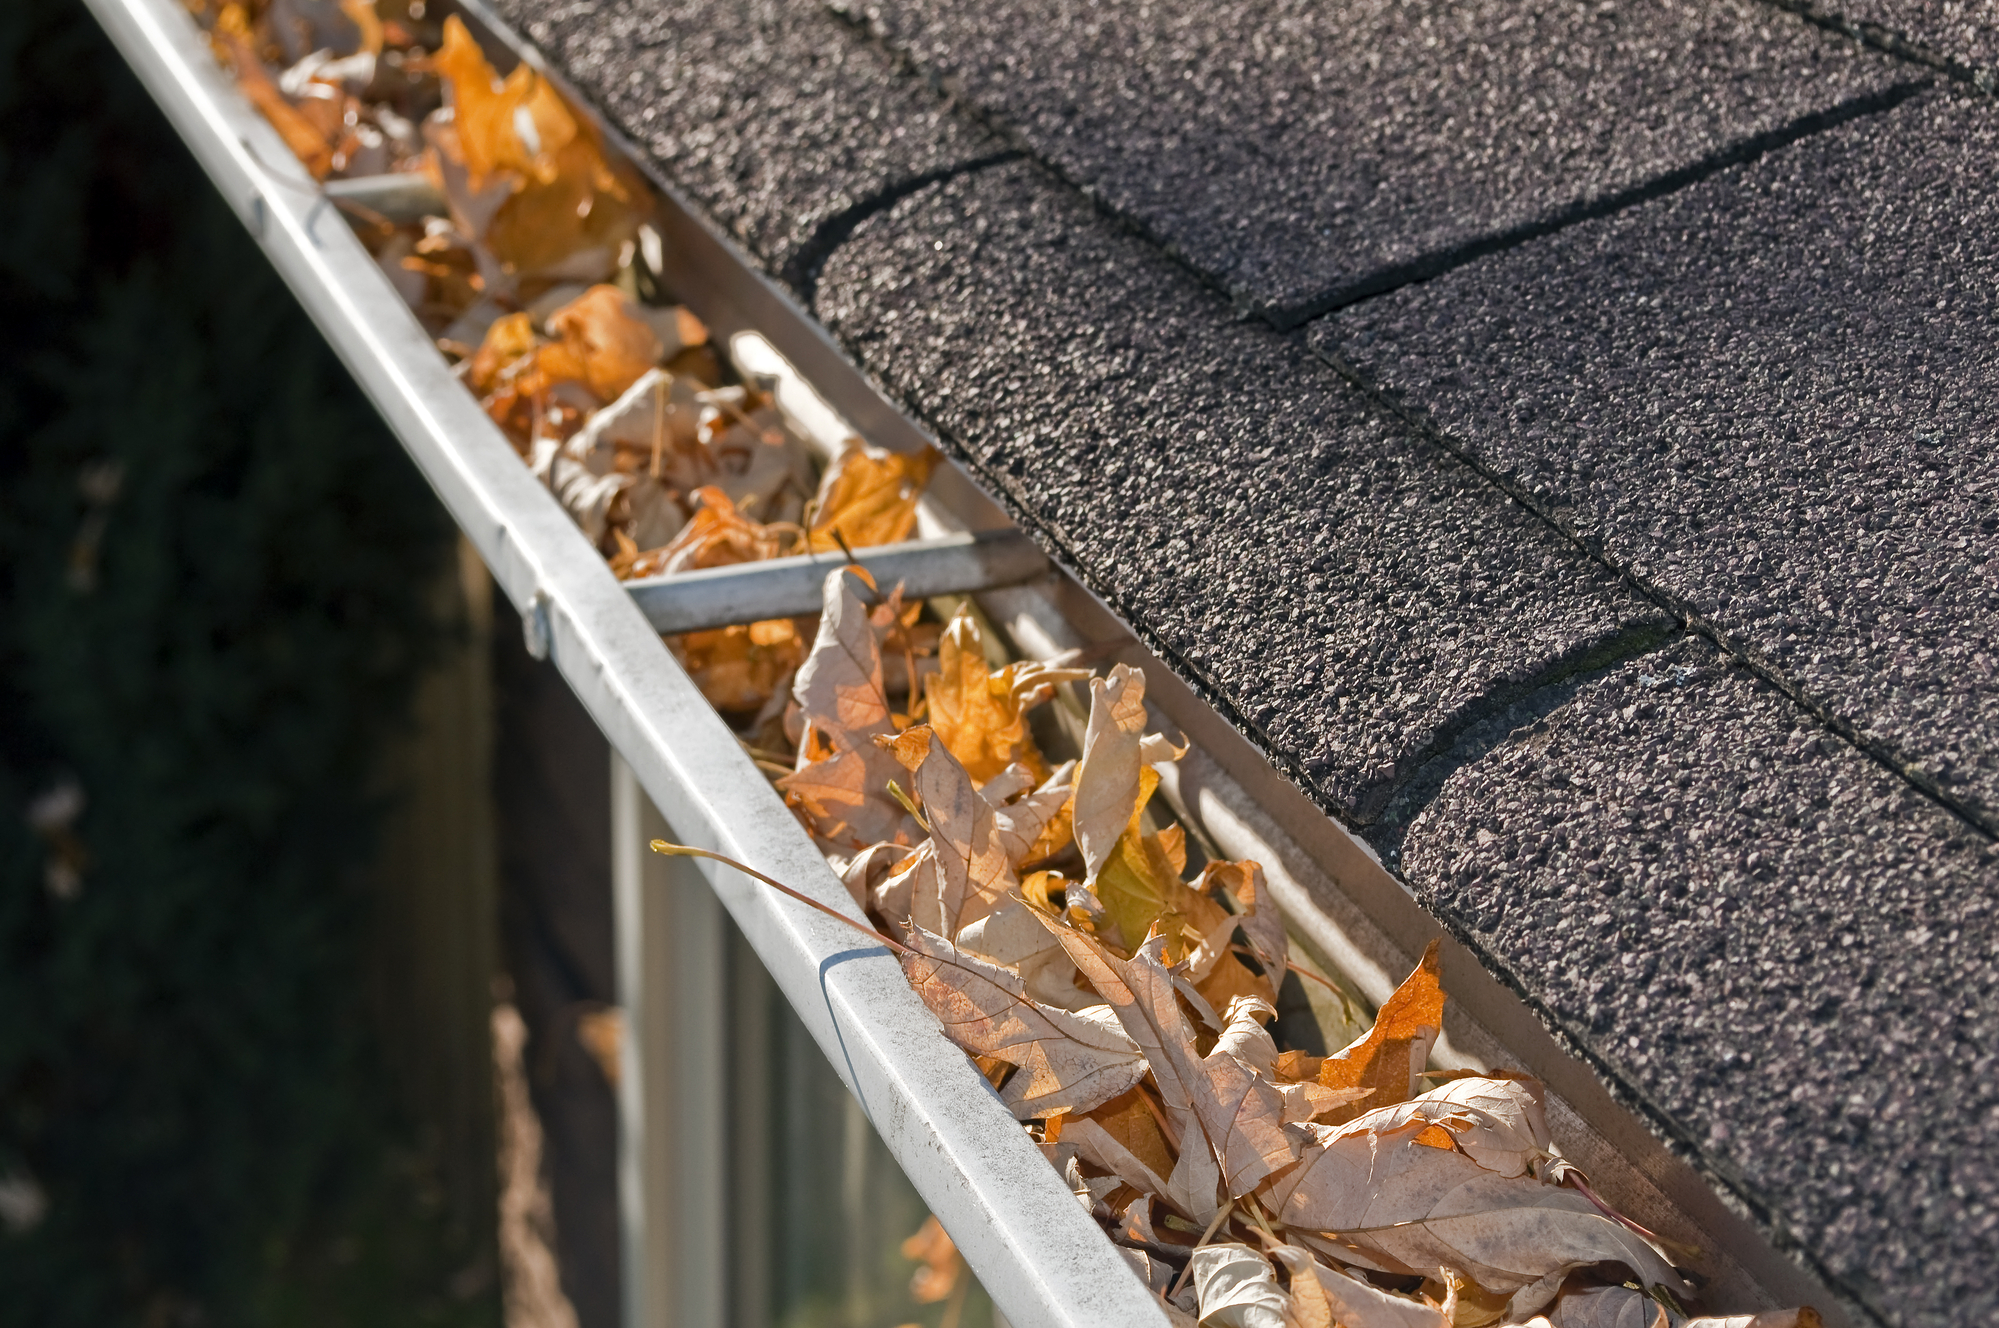 Leaves in rain gutter